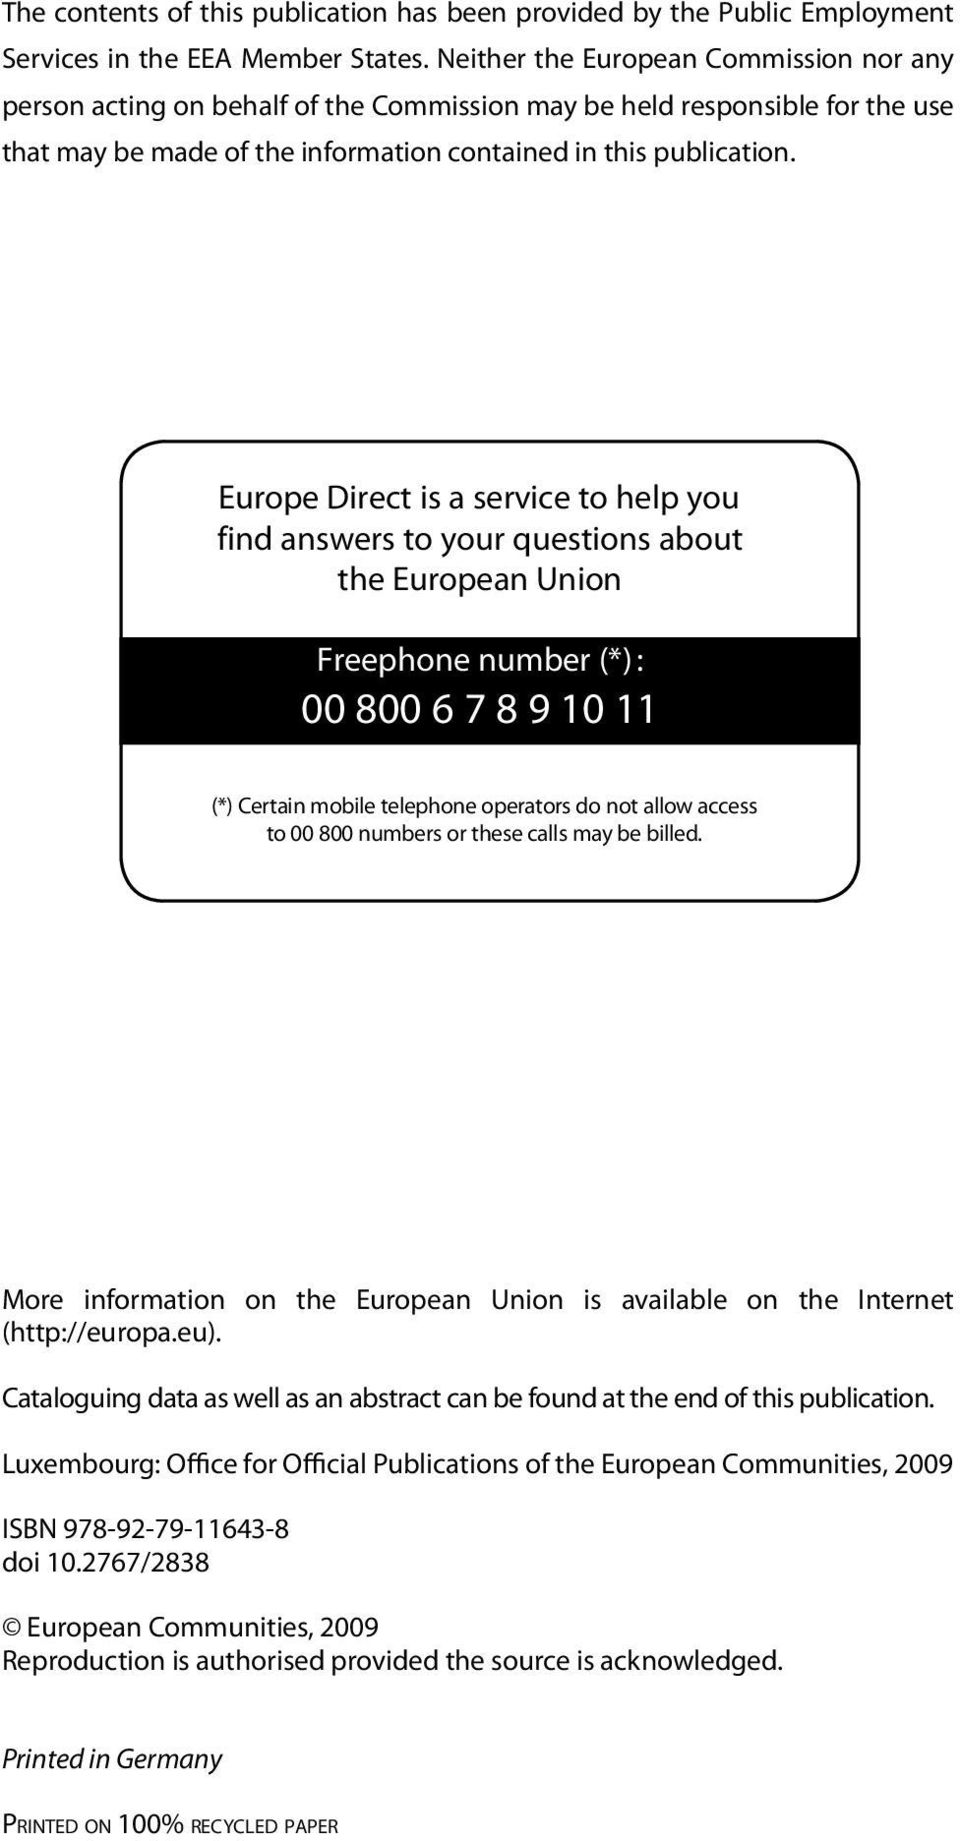 Europe Direct is a service to help you find answers to your questions about the European Union Freephone number (*) : 00 800 6 7 8 9 10 11 (*) Certain mobile telephone operators do not allow access